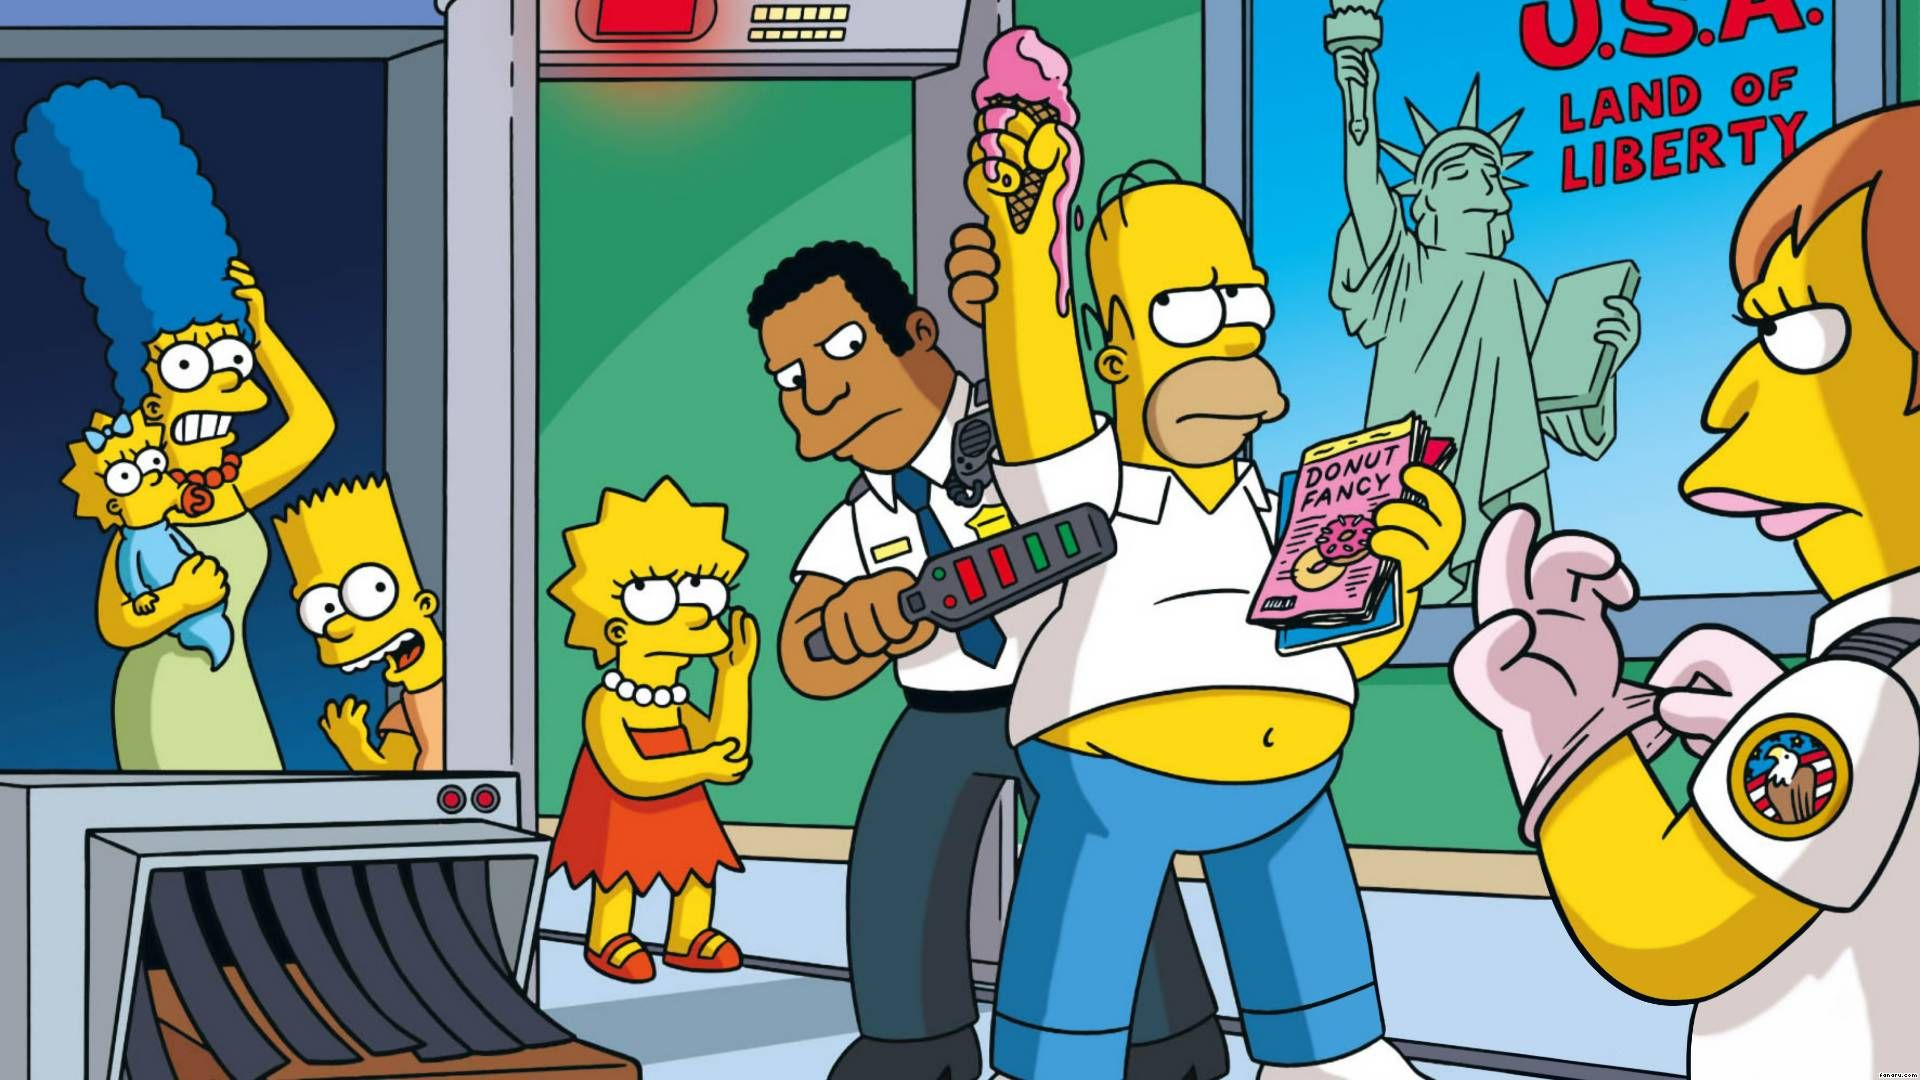 The Simpsons Wallpaper from The Simpsons. Marge simpson